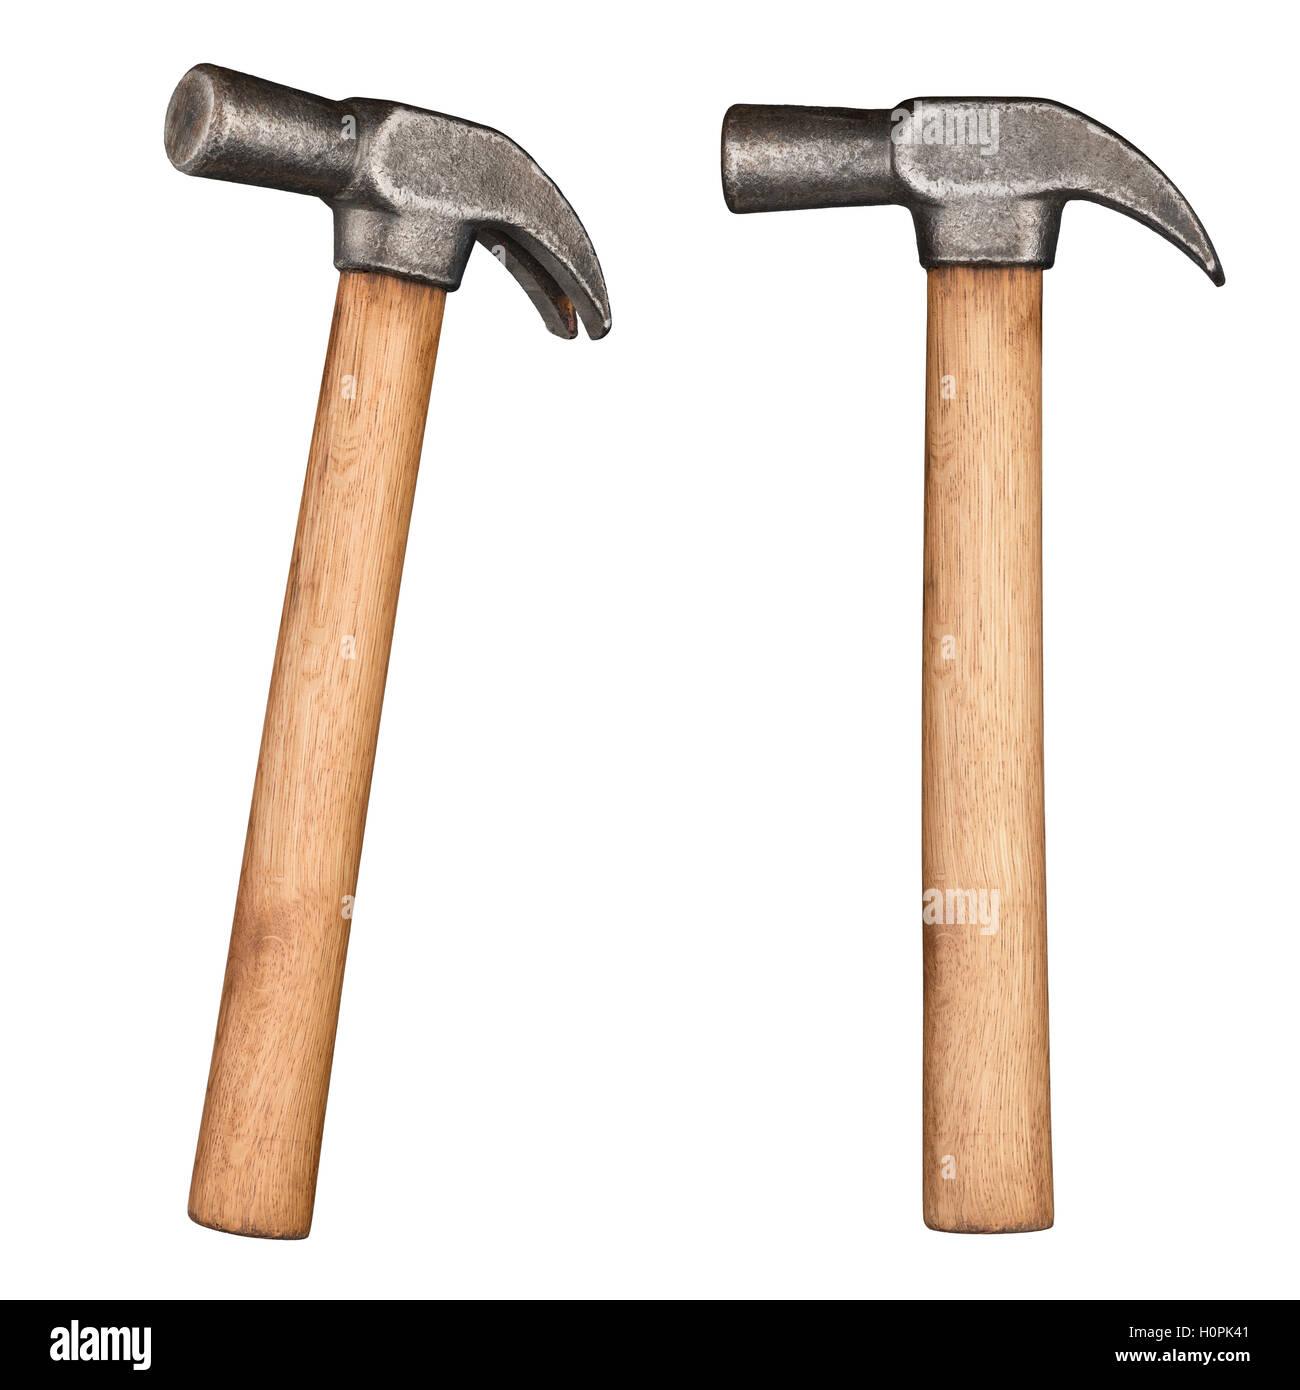 Old rustic claw hammer with wooden handle. - Stock Image